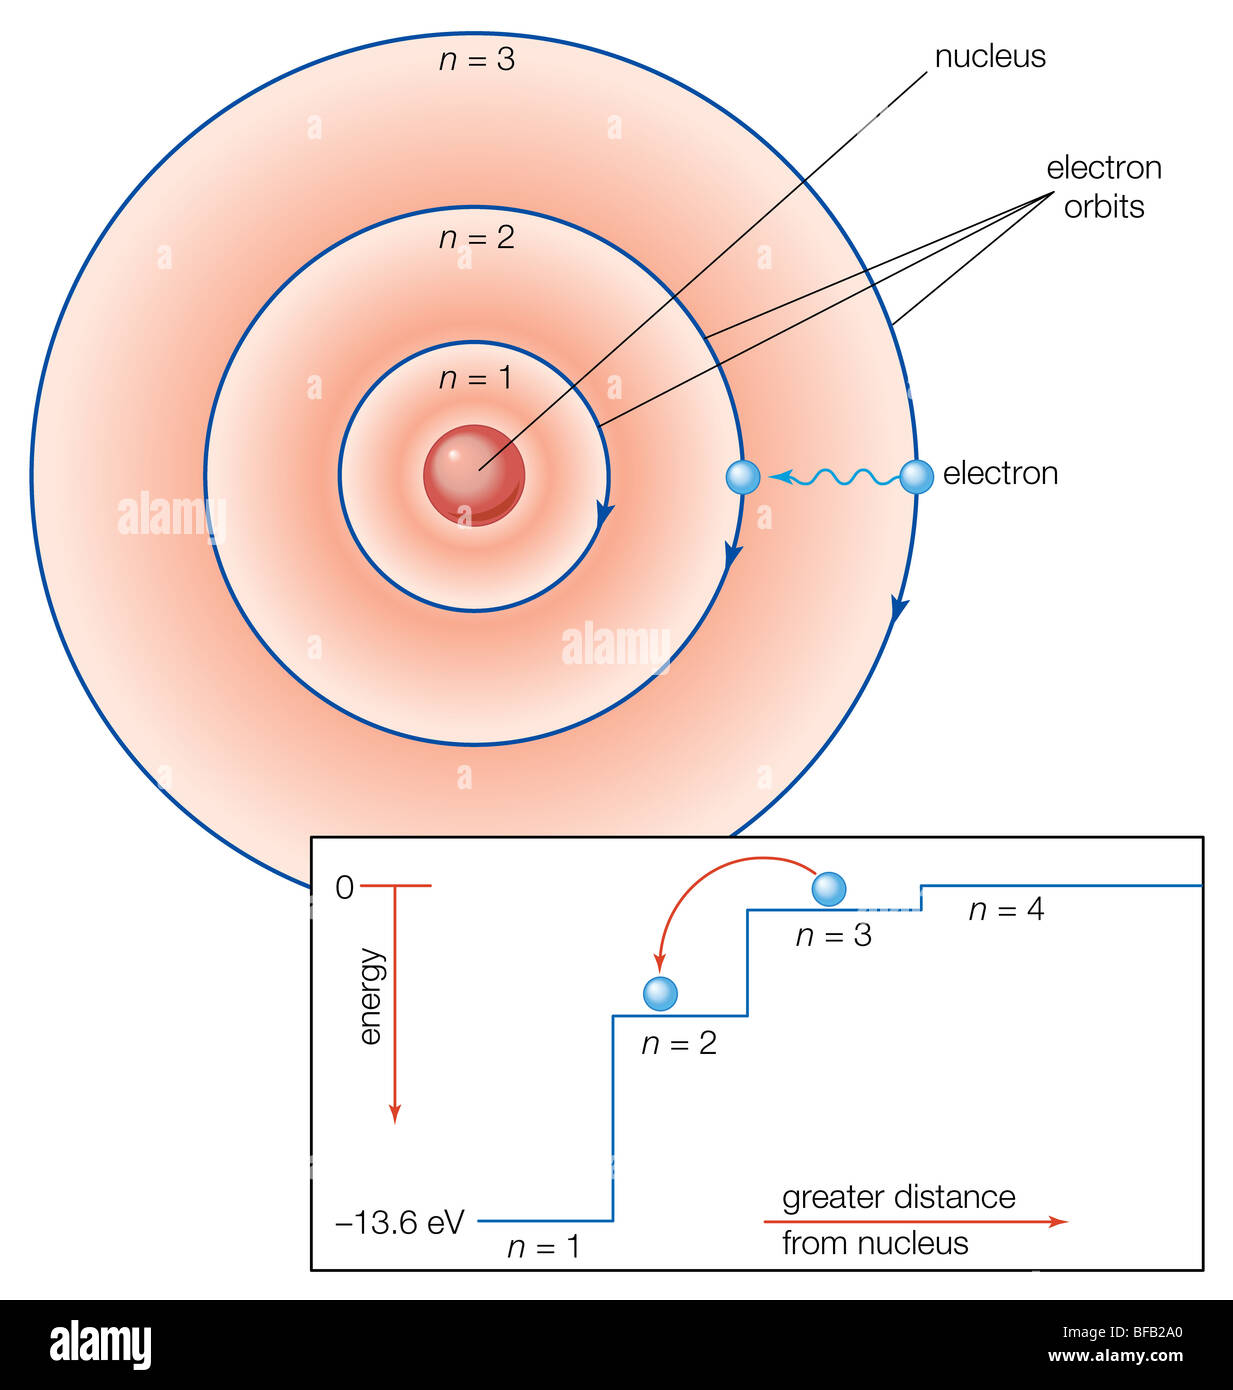 C8amycompbfb2a0bohr atomic model bfb2a0g pooptronica